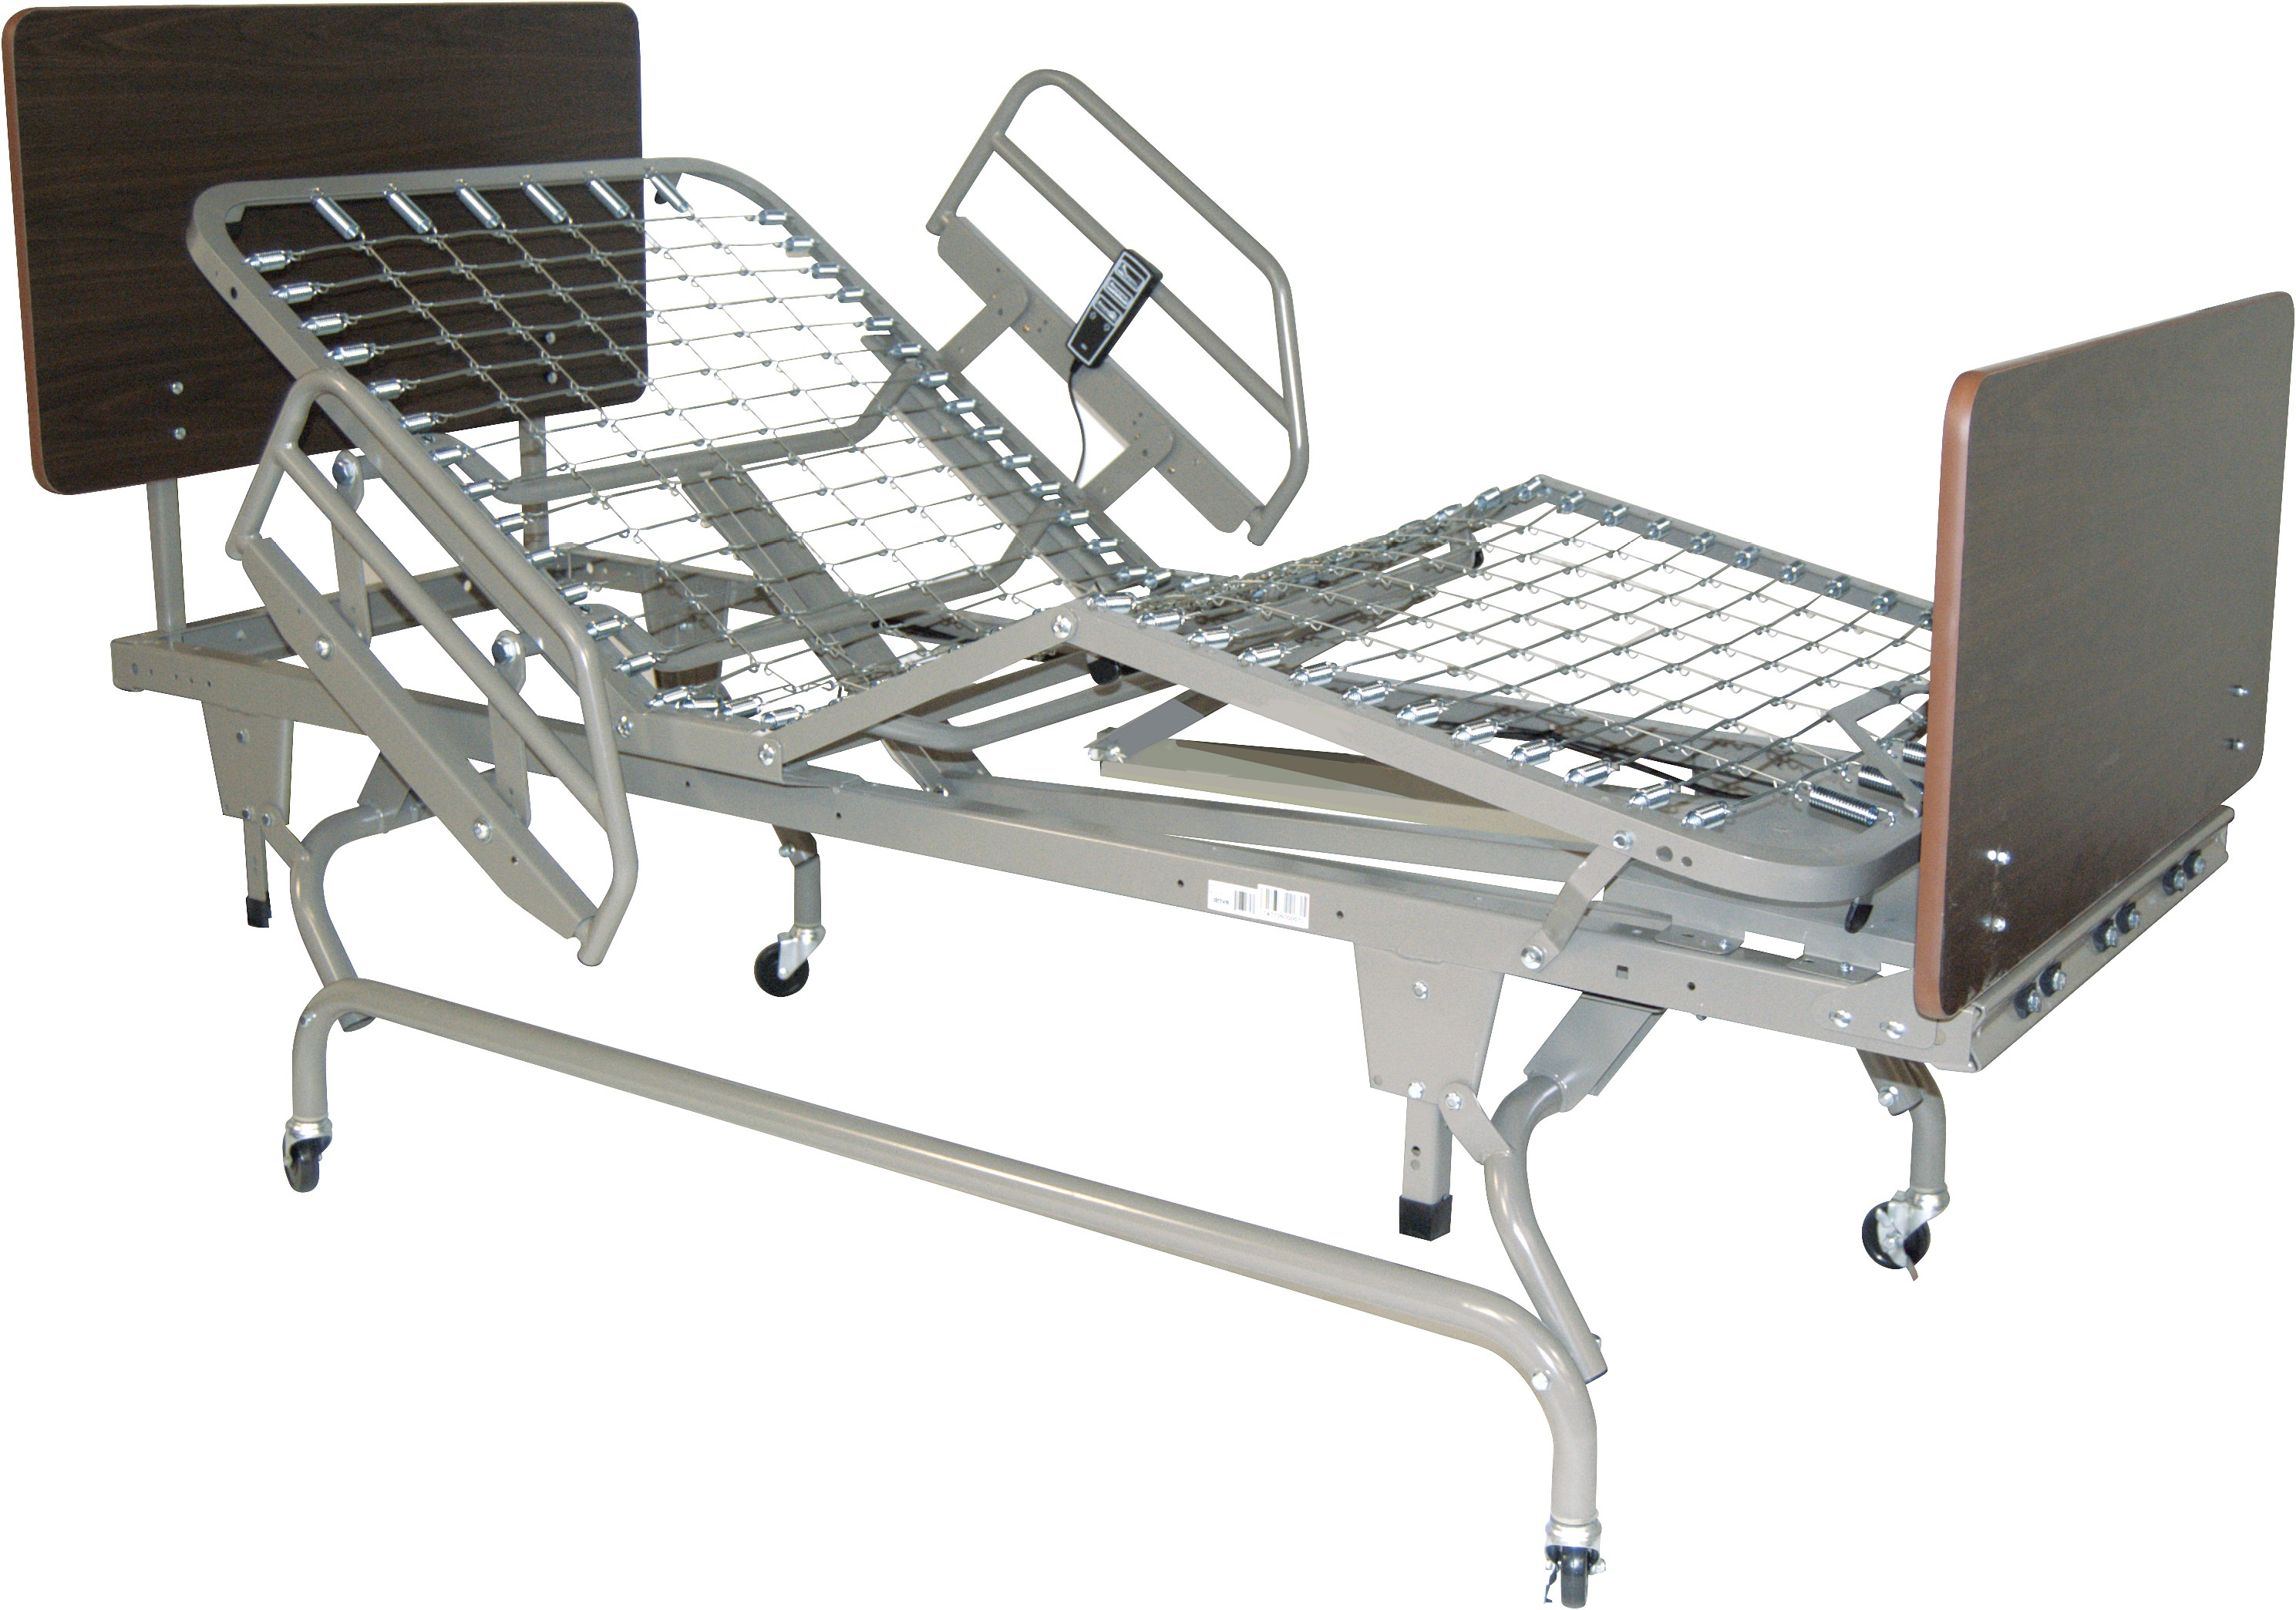 electricadjustablebeds bed tech independent rotec medical inc multitech inv living multi